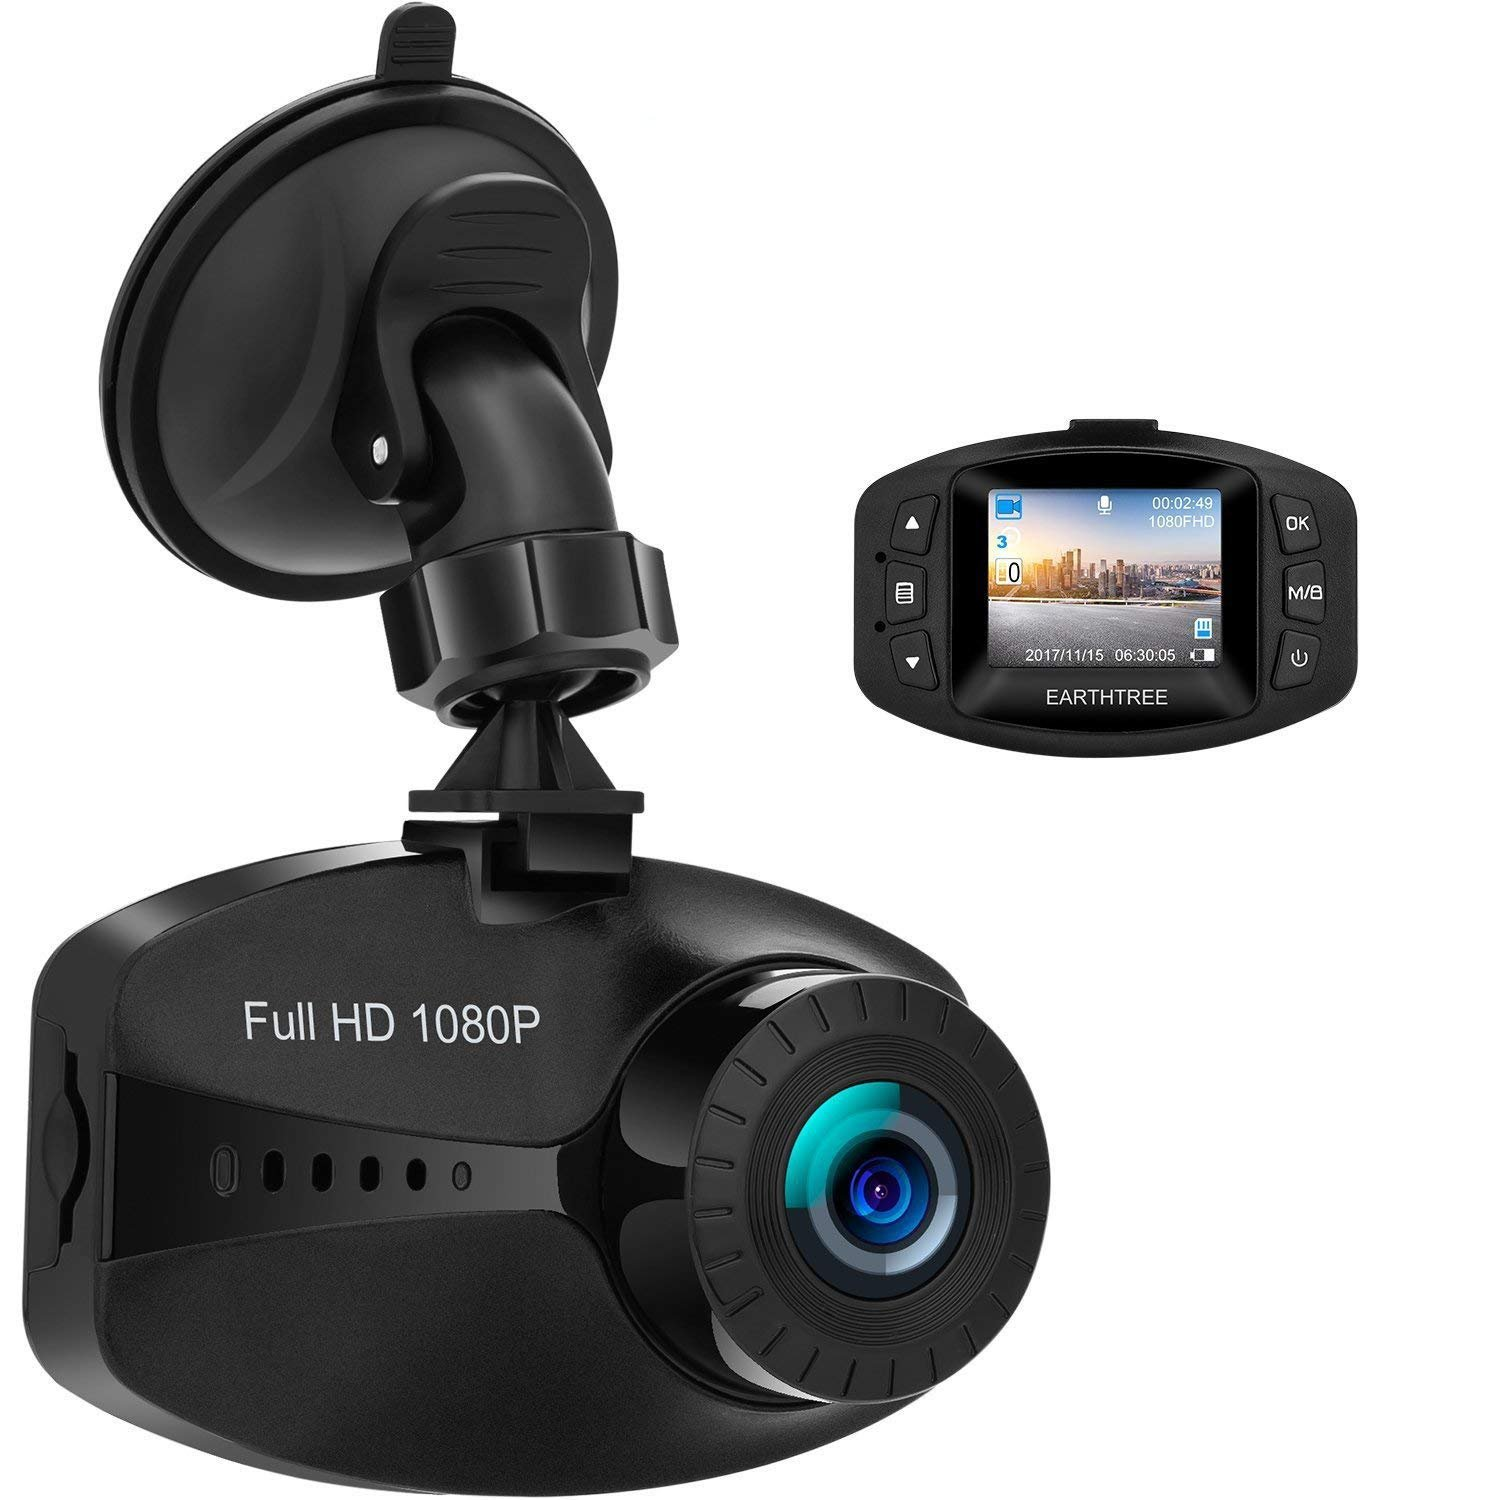 Earthtree In Car Dash Cam FHD 1080P Mini Car Dashboard Camera with Sony Sensor WDR G-Sensor Loop Recording Motion Detection and Parking Monitor DC30